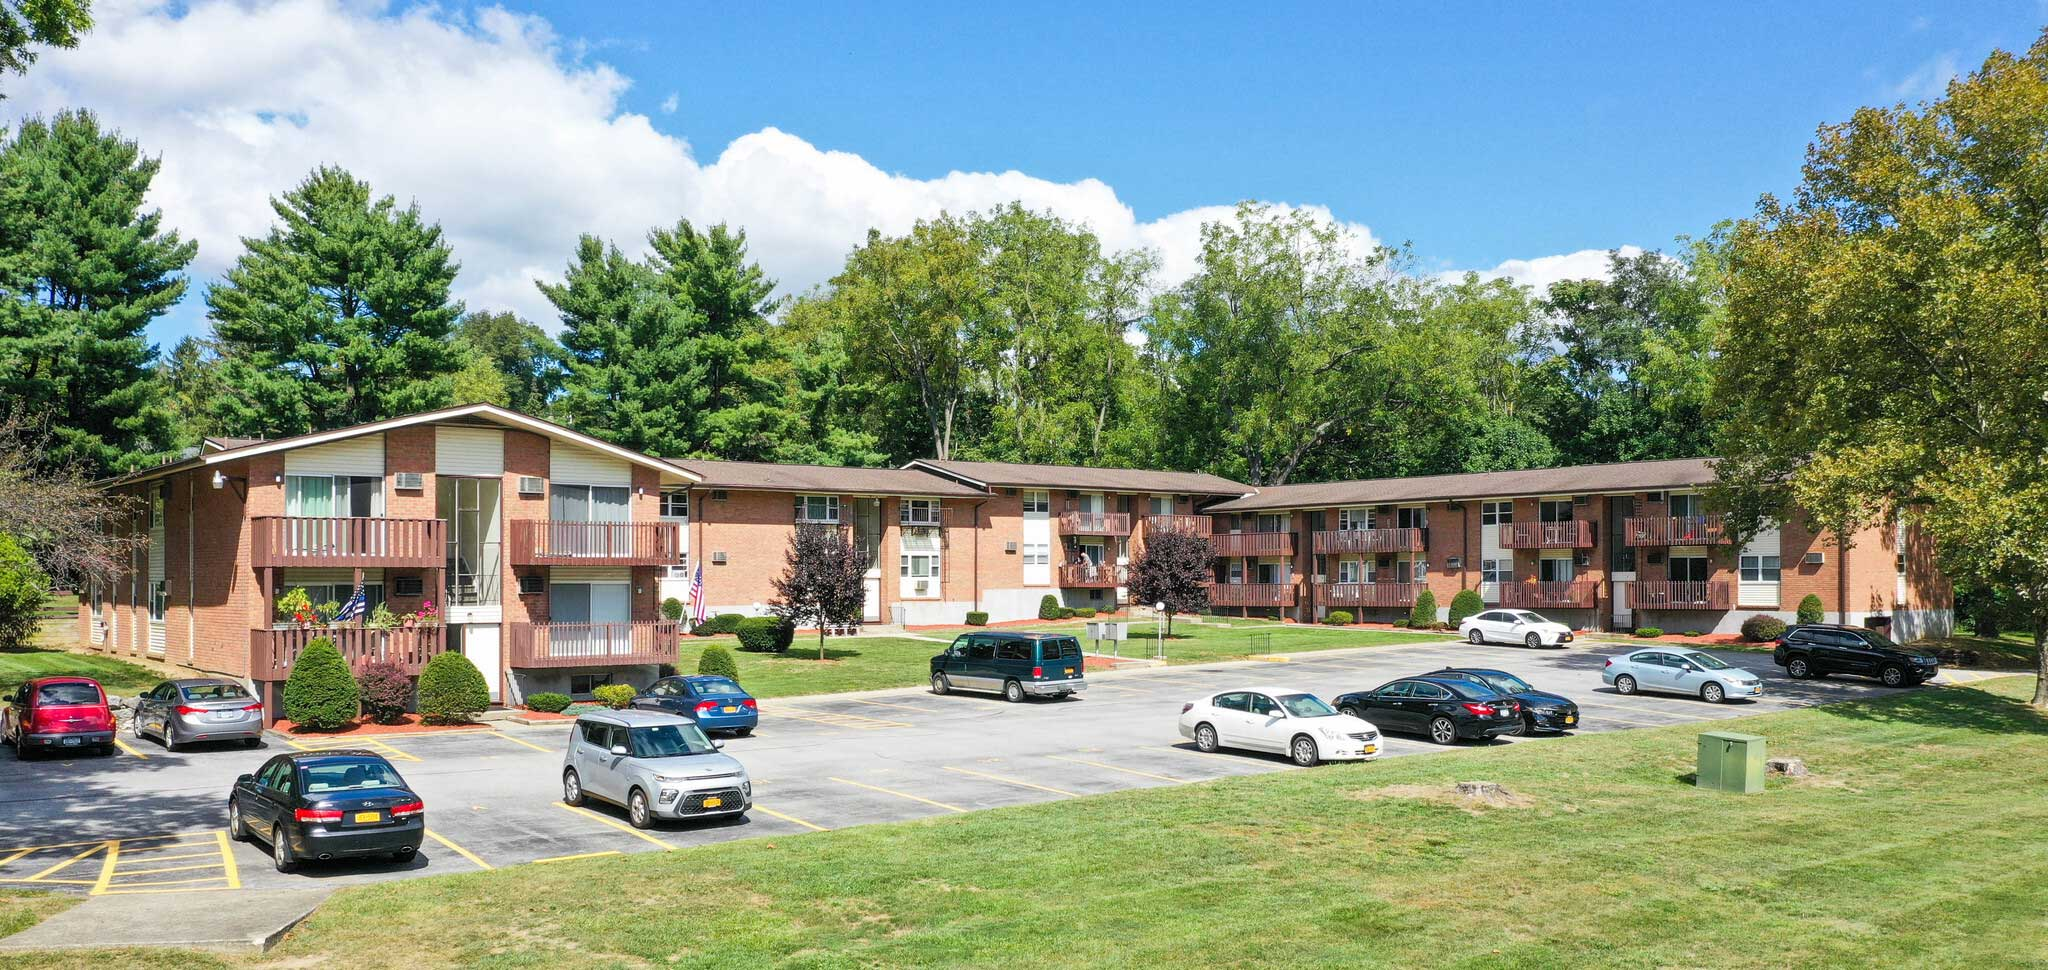 Parking at Mountainview Gardens Apartments in Fishkill, NY